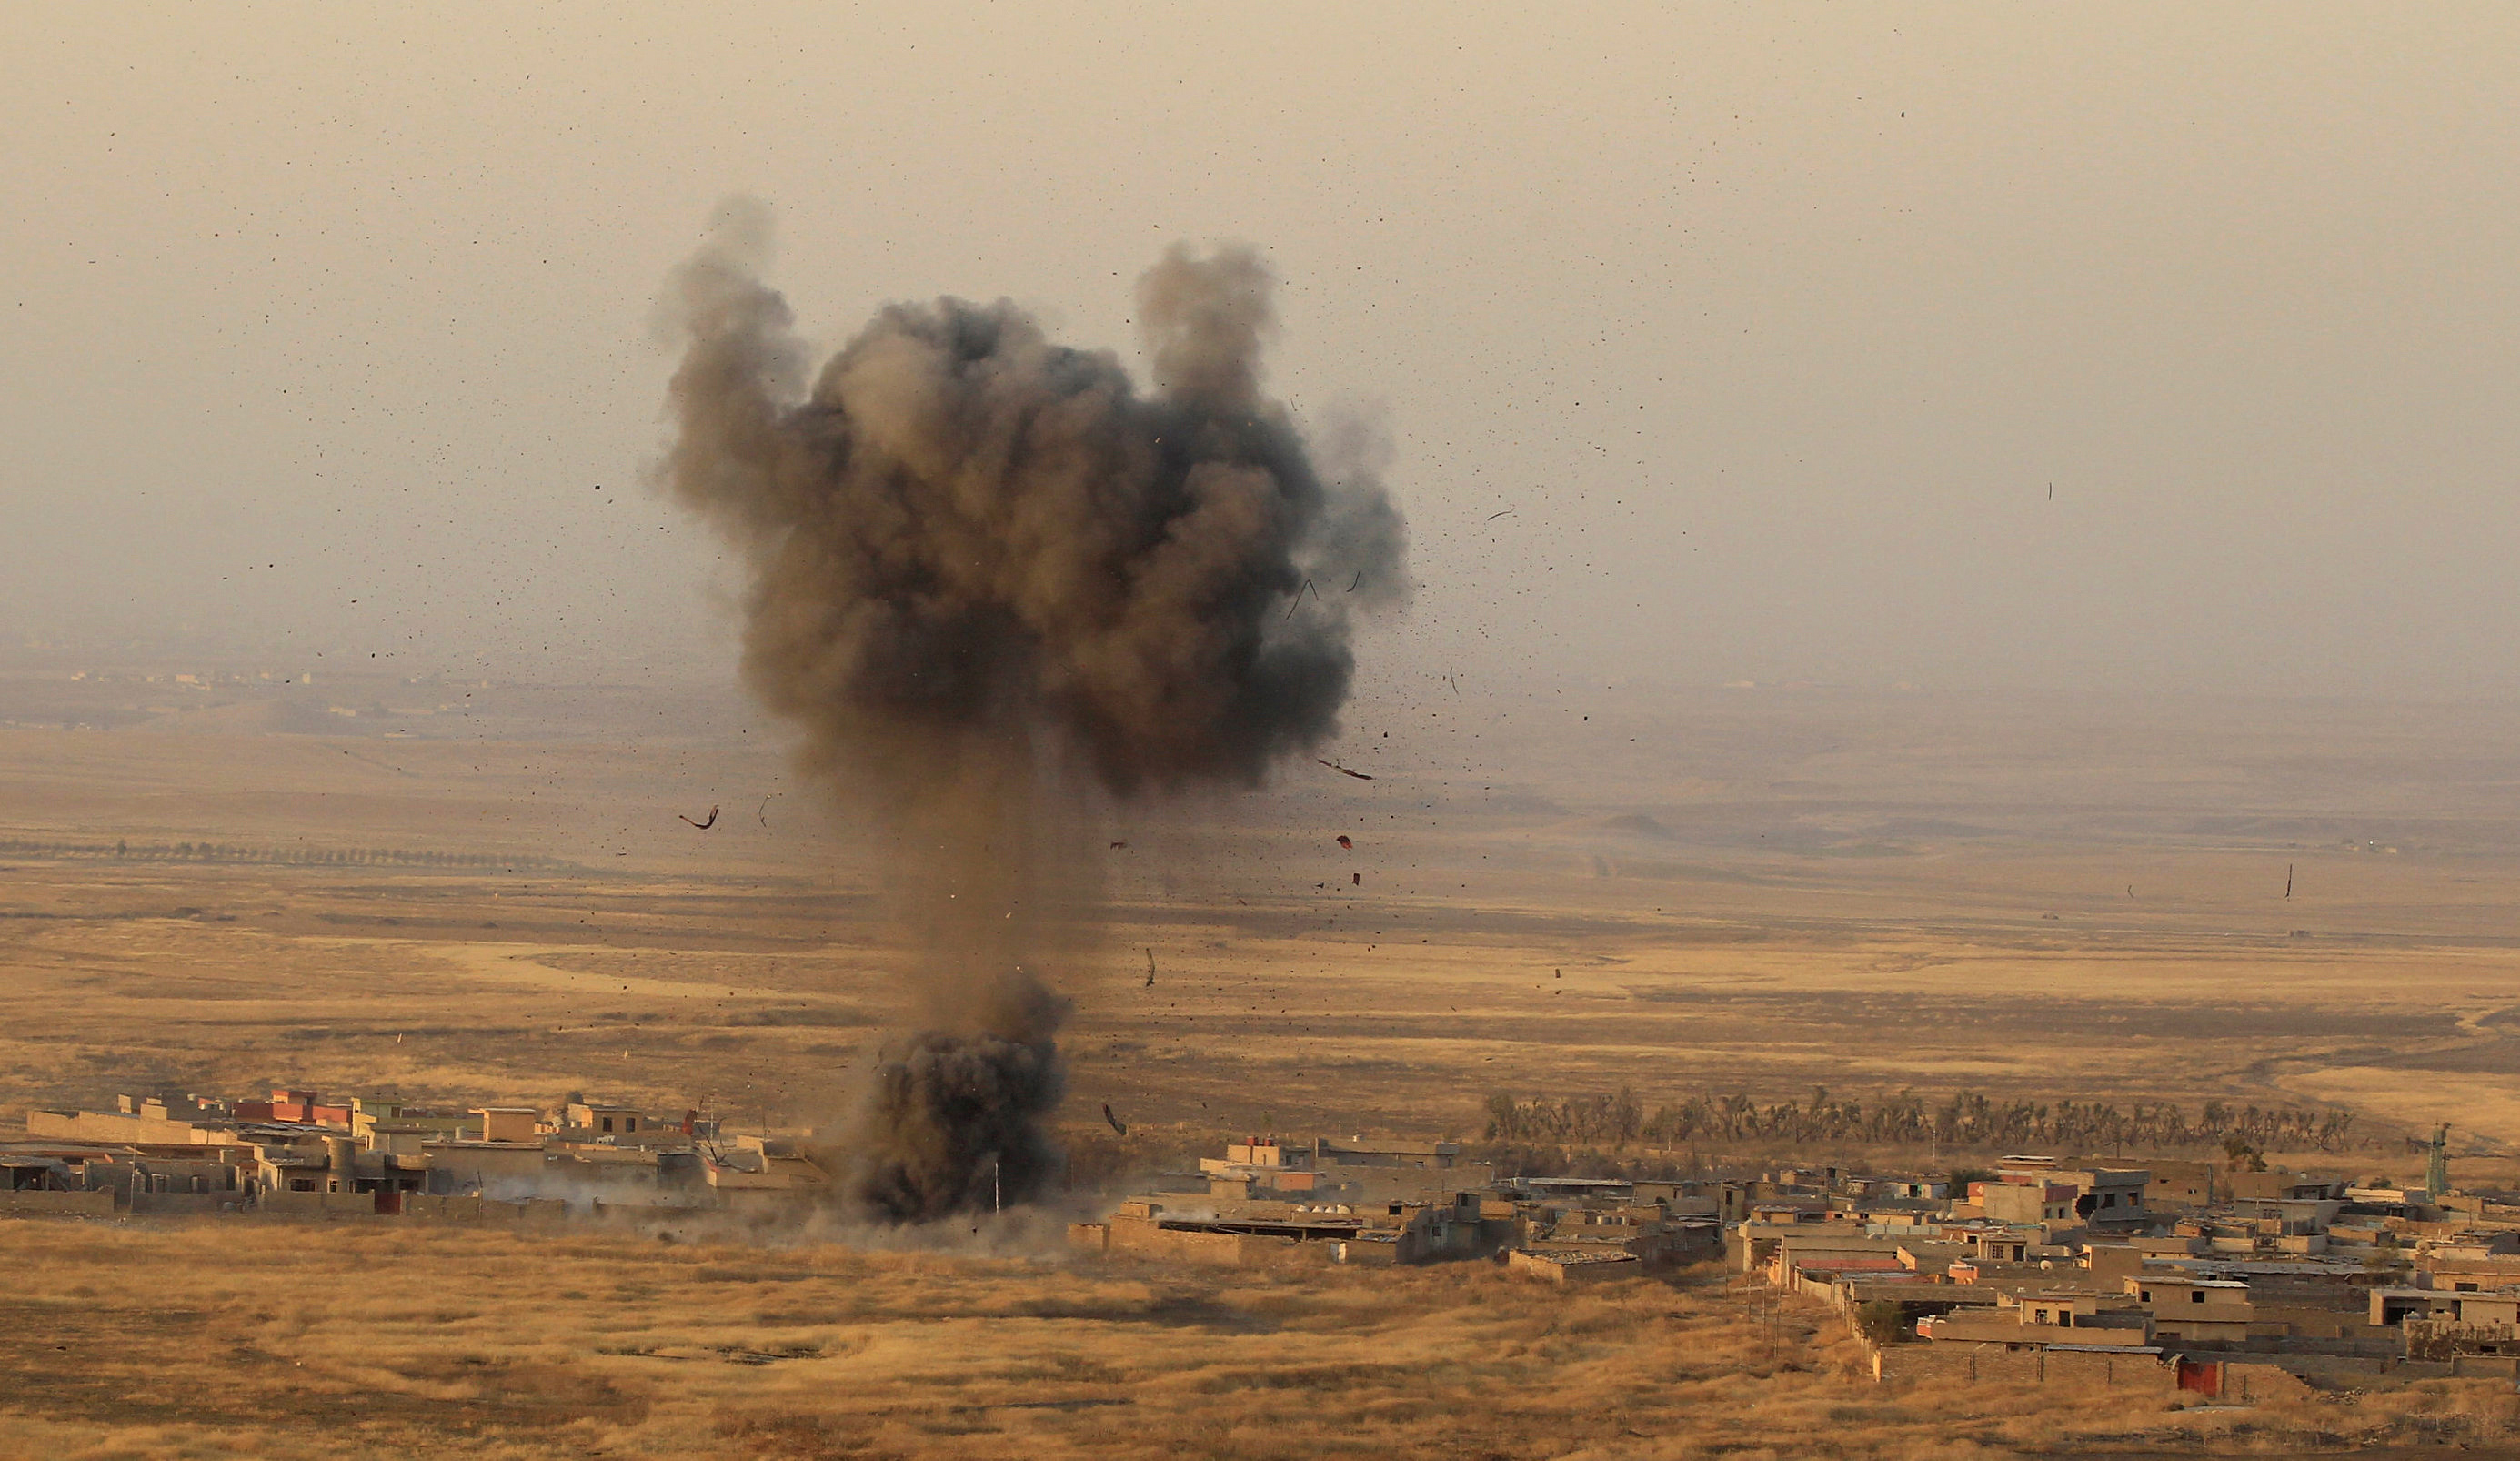 A bomb hits an Islamic State militant position in the town of Naweran near Mosul, Iraq on Oct. 20. The Pentagon says Mosul liberation could take some time but that Iraqis have the capabilities to do it. Photo by Zohra Bensemra/Reuters